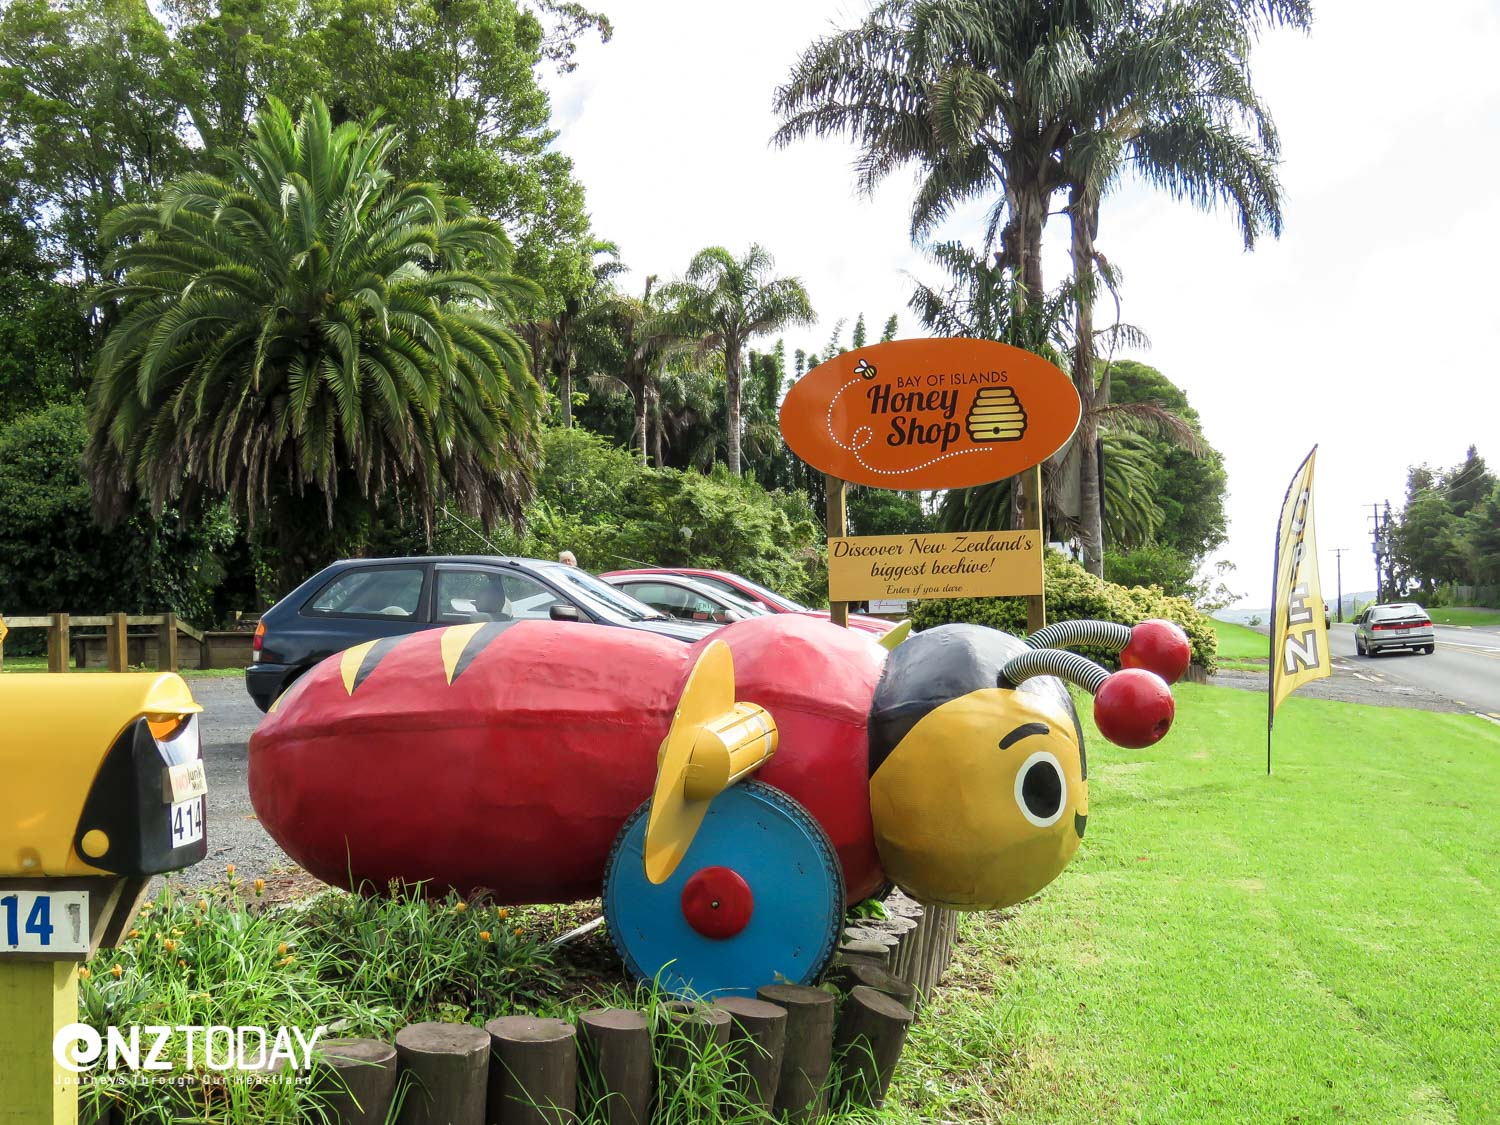 Iconic Buzzy Bee at the entrance to Bay of Islands Honey Shop